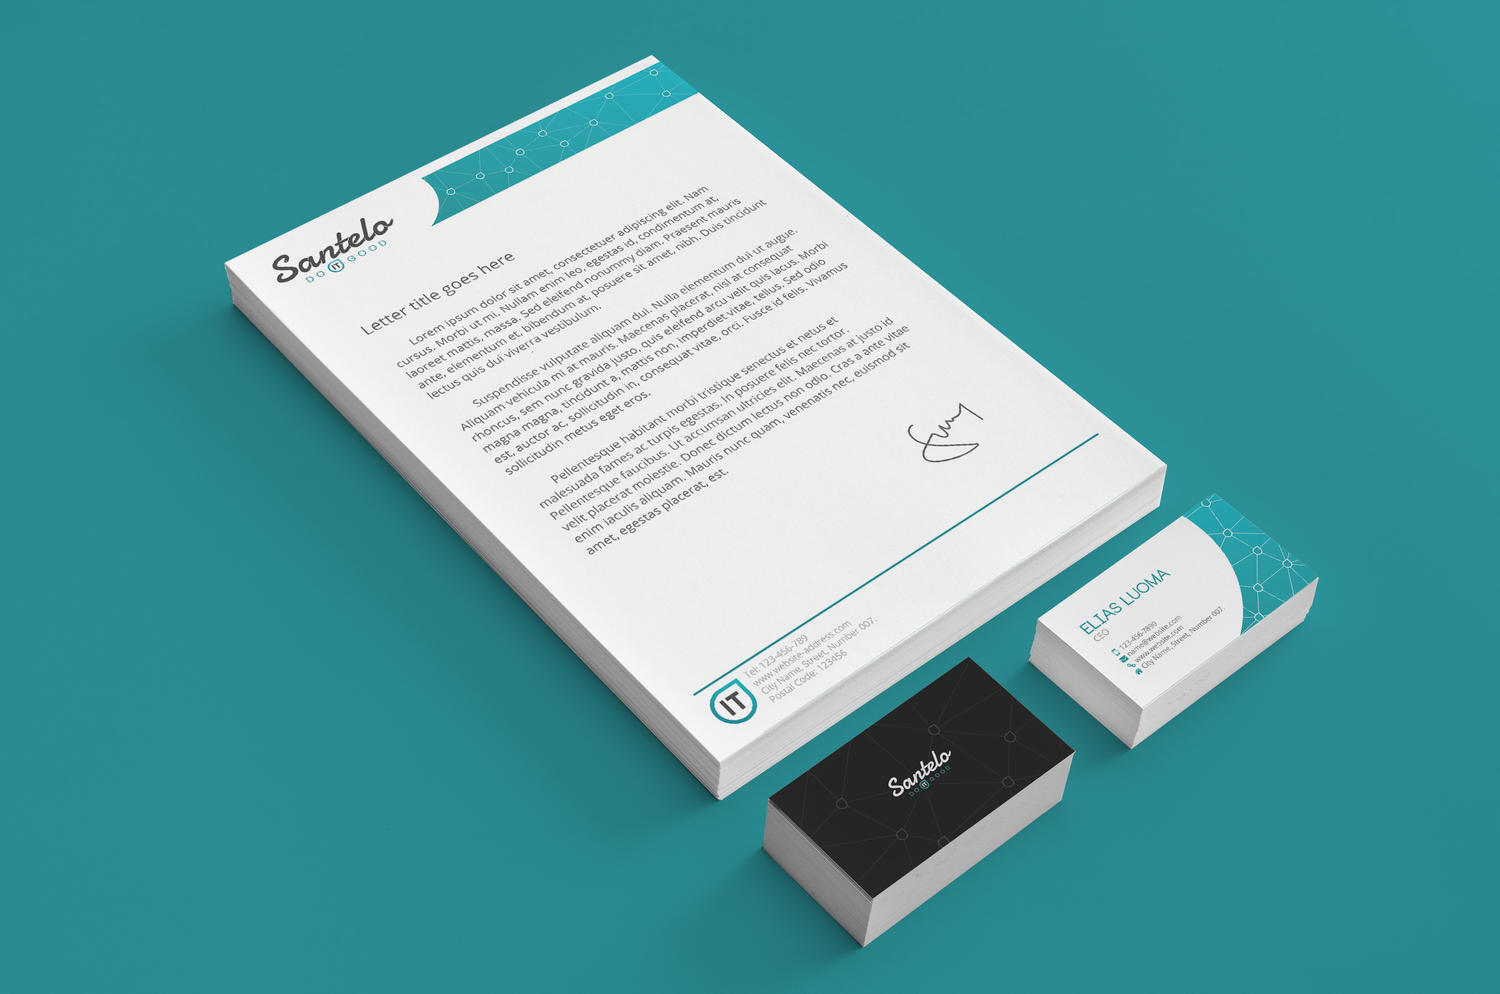 Brand Assets - Stationery Design & Marketing Collateral by WhiteX - 71080